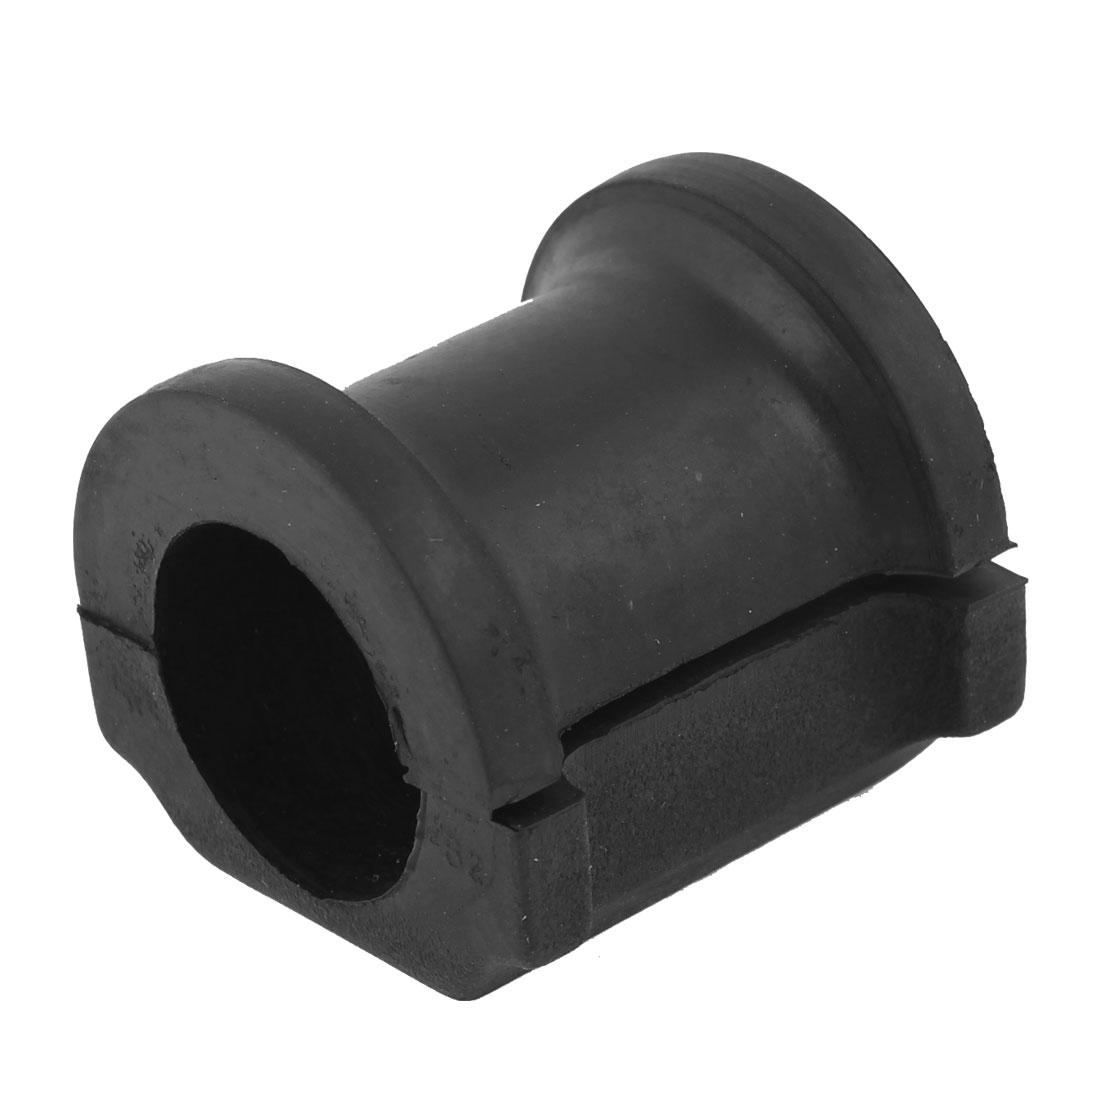 Vehicle Auto Front Stabilizer Bar Rubber Bushing Holder Black 51306-S7B-014